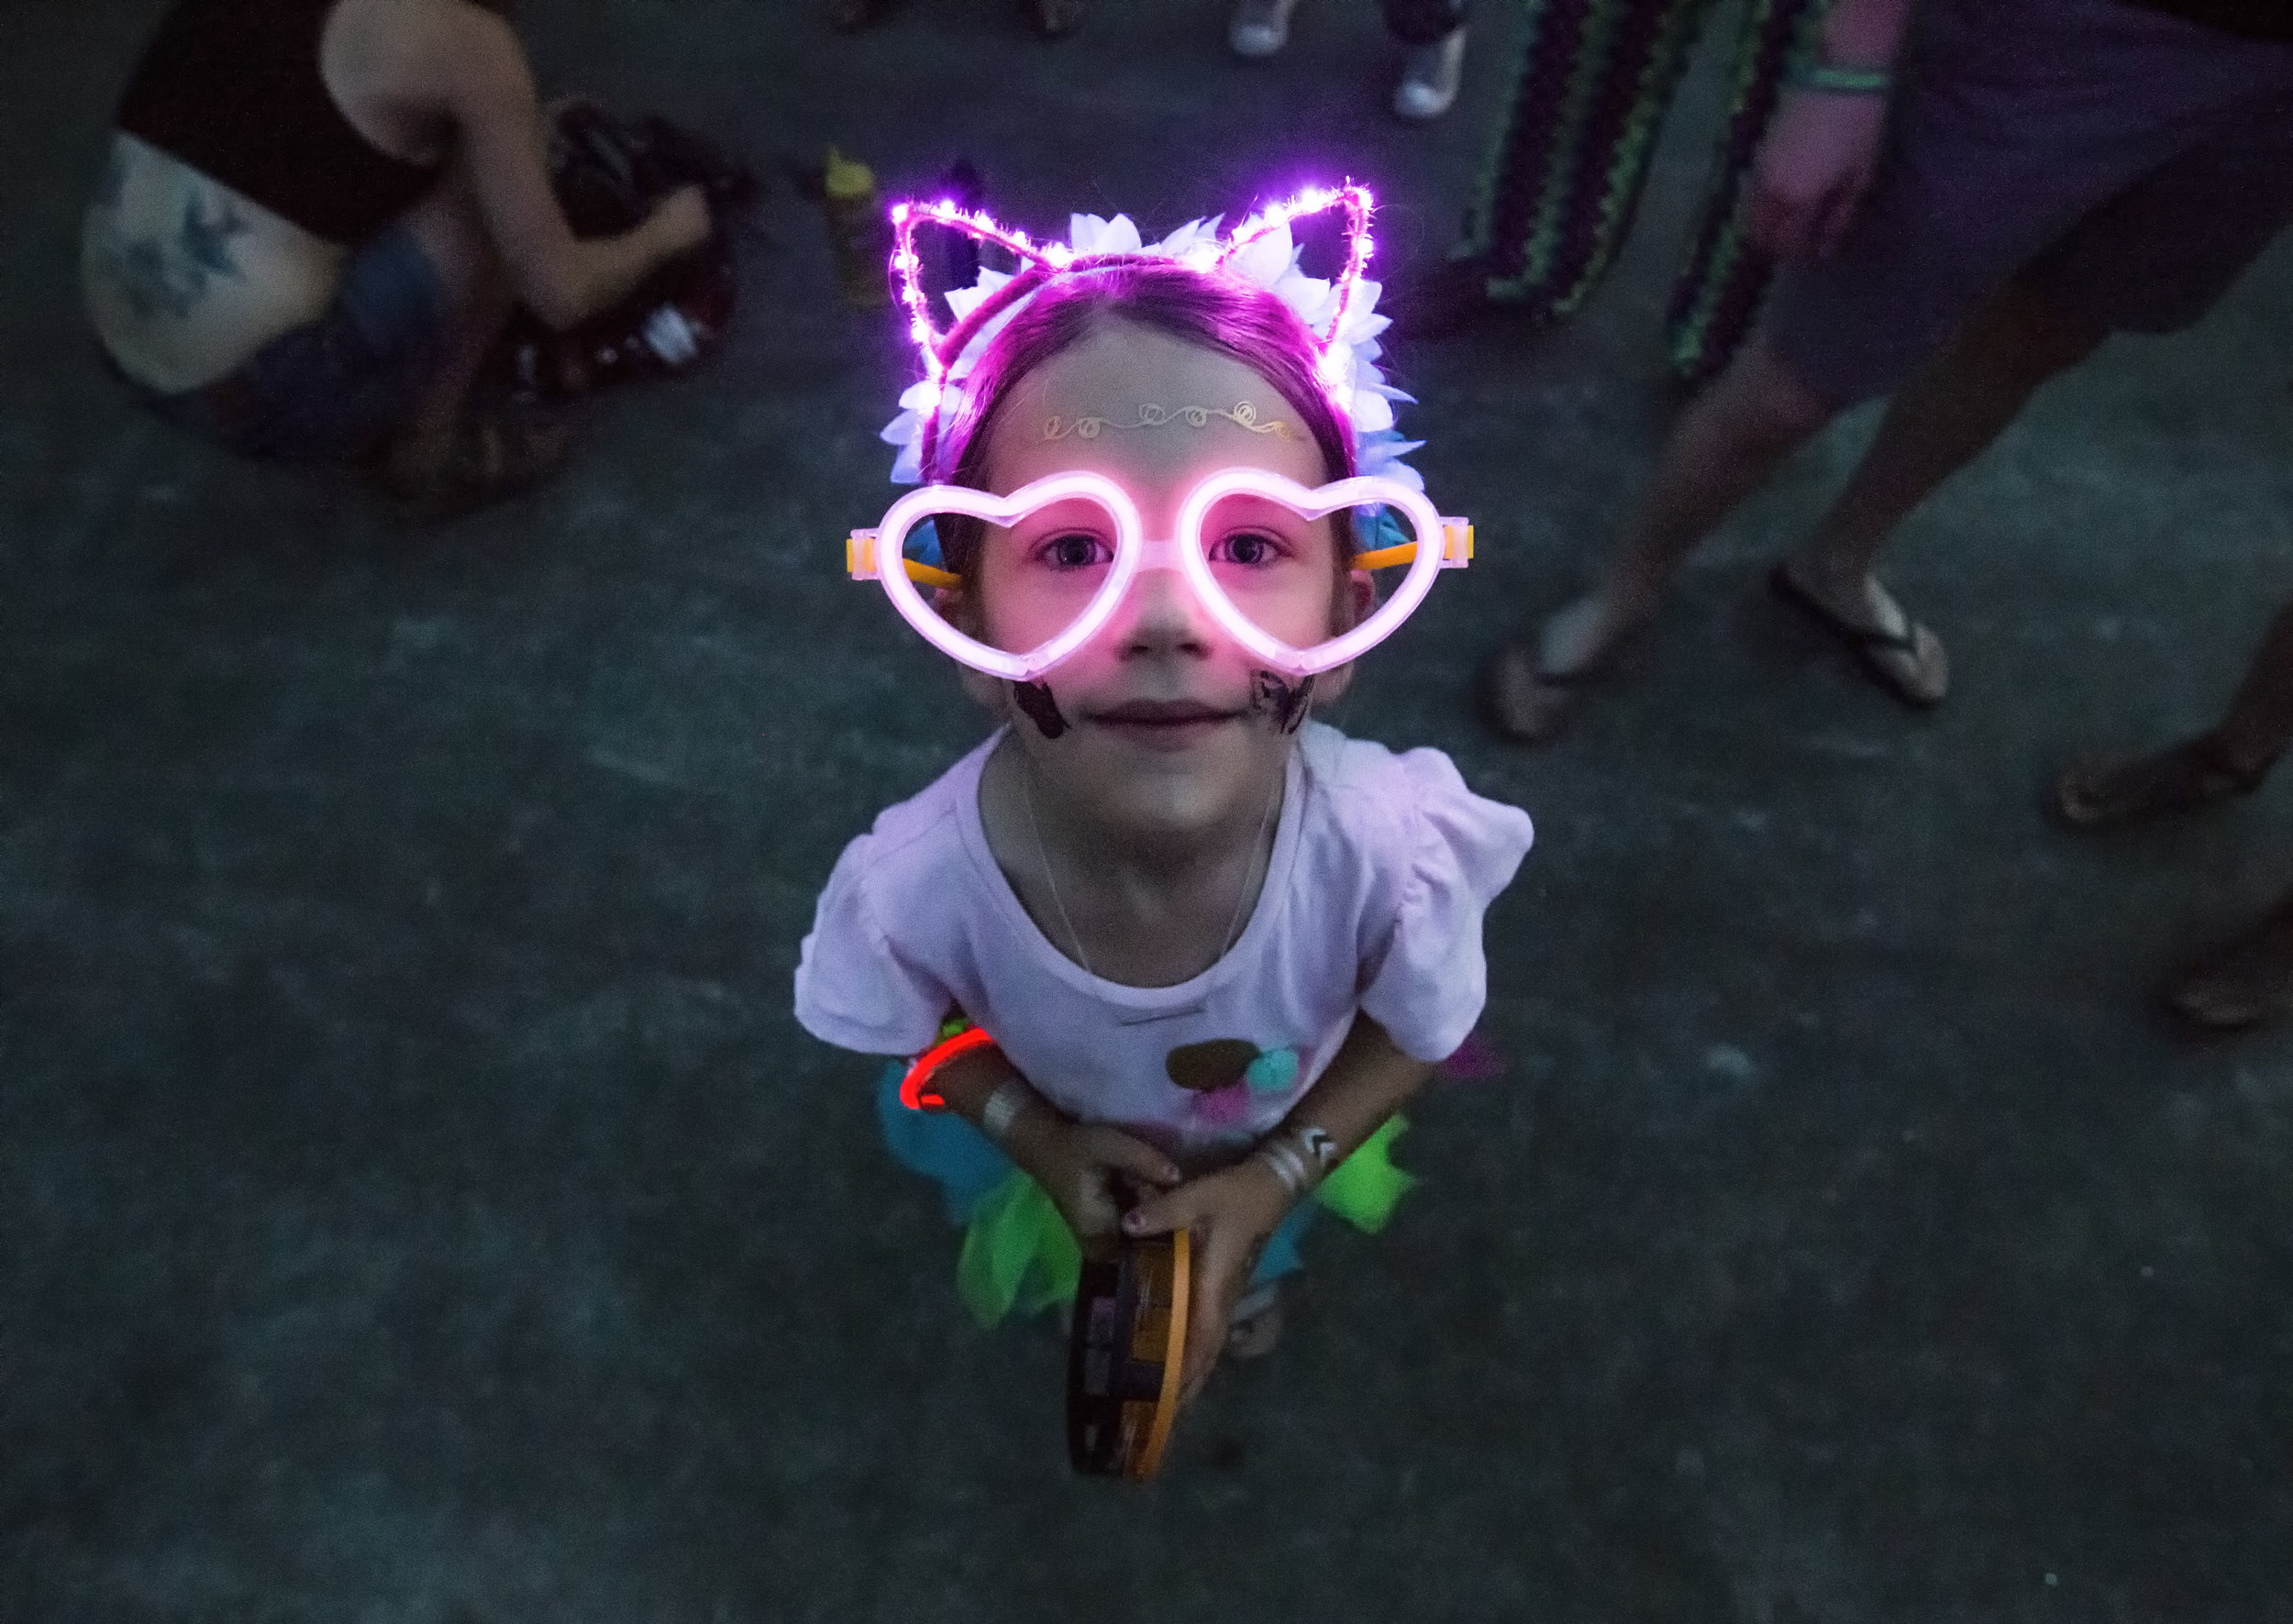 Audrey Parrish, 6, stops dancing to pose for a portrait in her cat costume during the Summer Meltdown festival in Darrington, Wash. on Aug. 8, 2018.